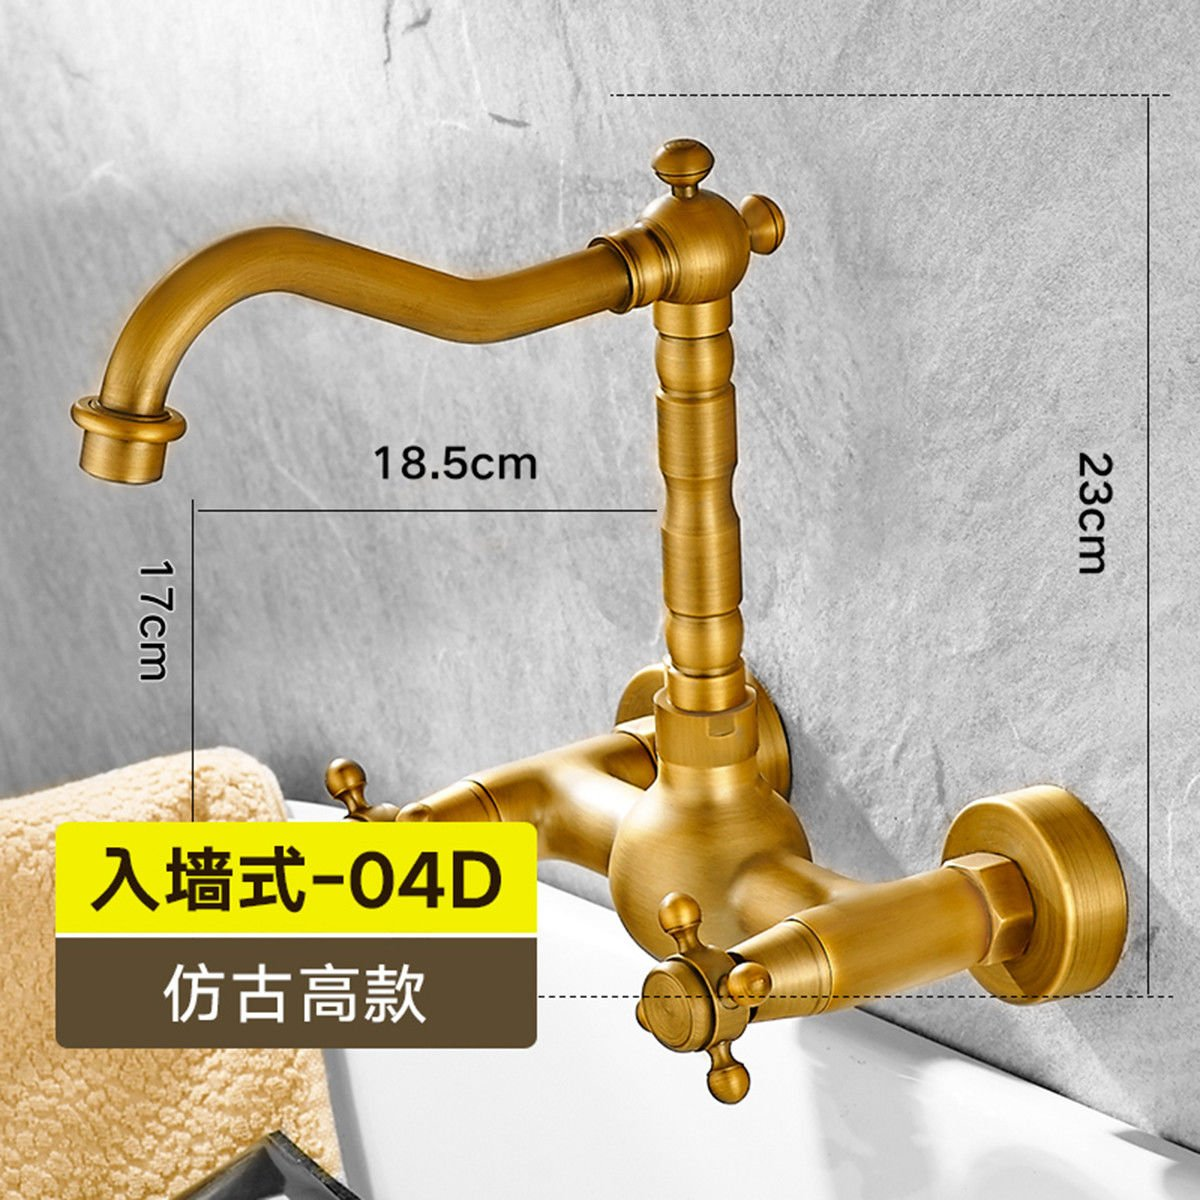 B S.Twl.E Sink Mixer Tap Faucet Bathroom Kitchen Basin Tap Leakproof Save Water Black Into Wall Mounted Basin Faucet Antique Copper Hot And Cold Double Hole A